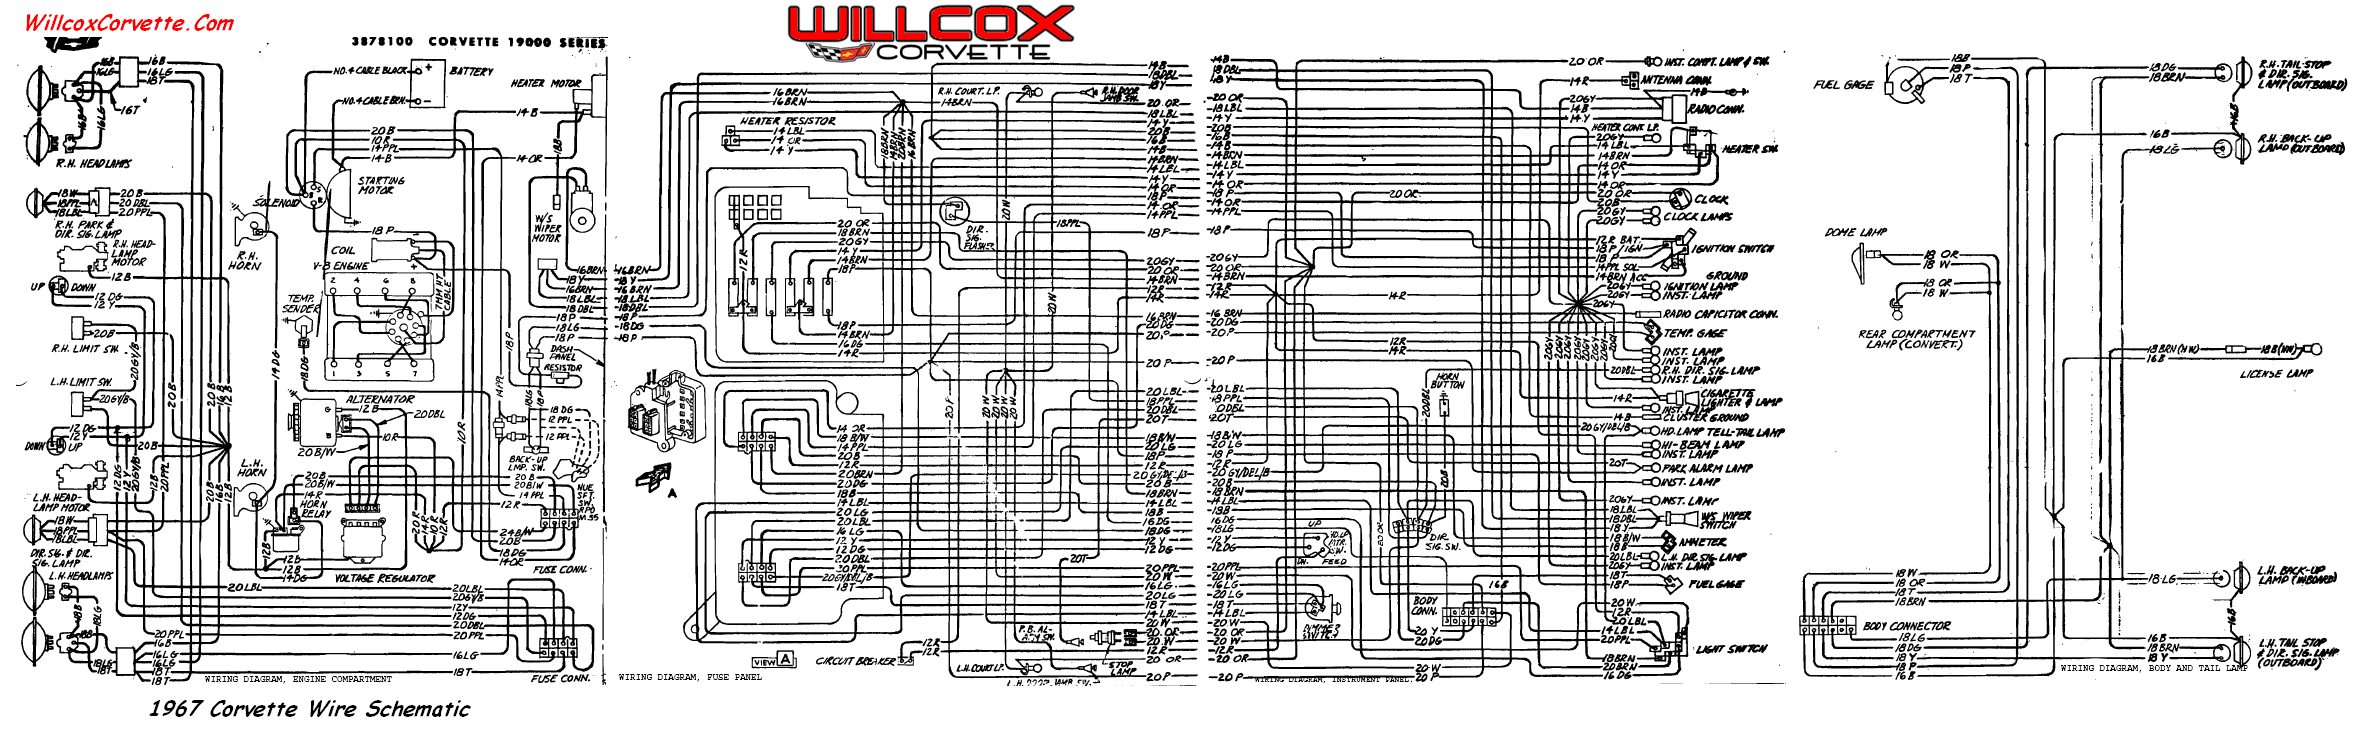 1967 corvette wiring diagram 1967 wiring diagrams online 1967 corvette wiring diagram tracer schematic willcox corvette